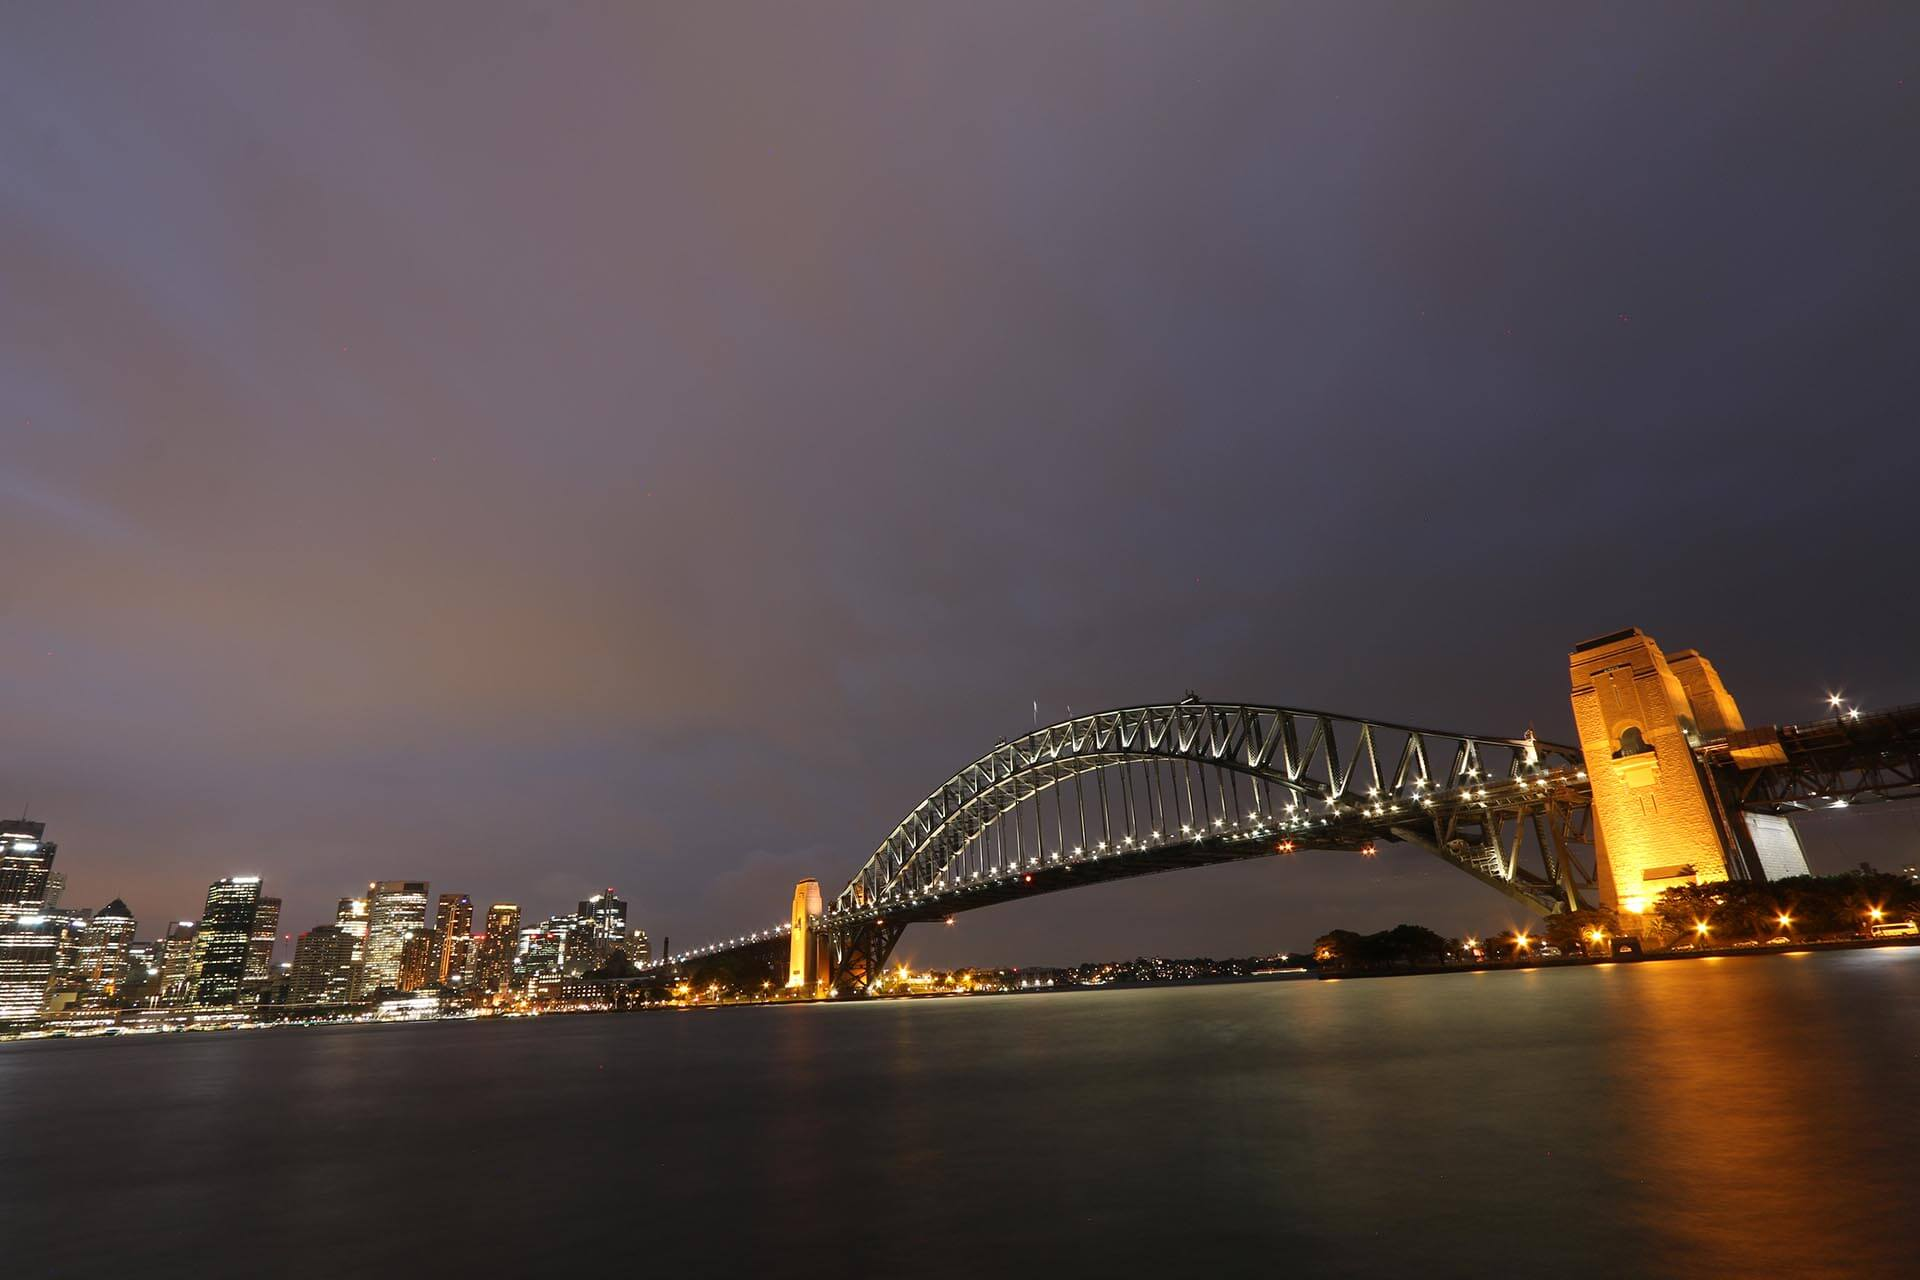 Sydney Harbour Bridge at Night John Luhr Photography